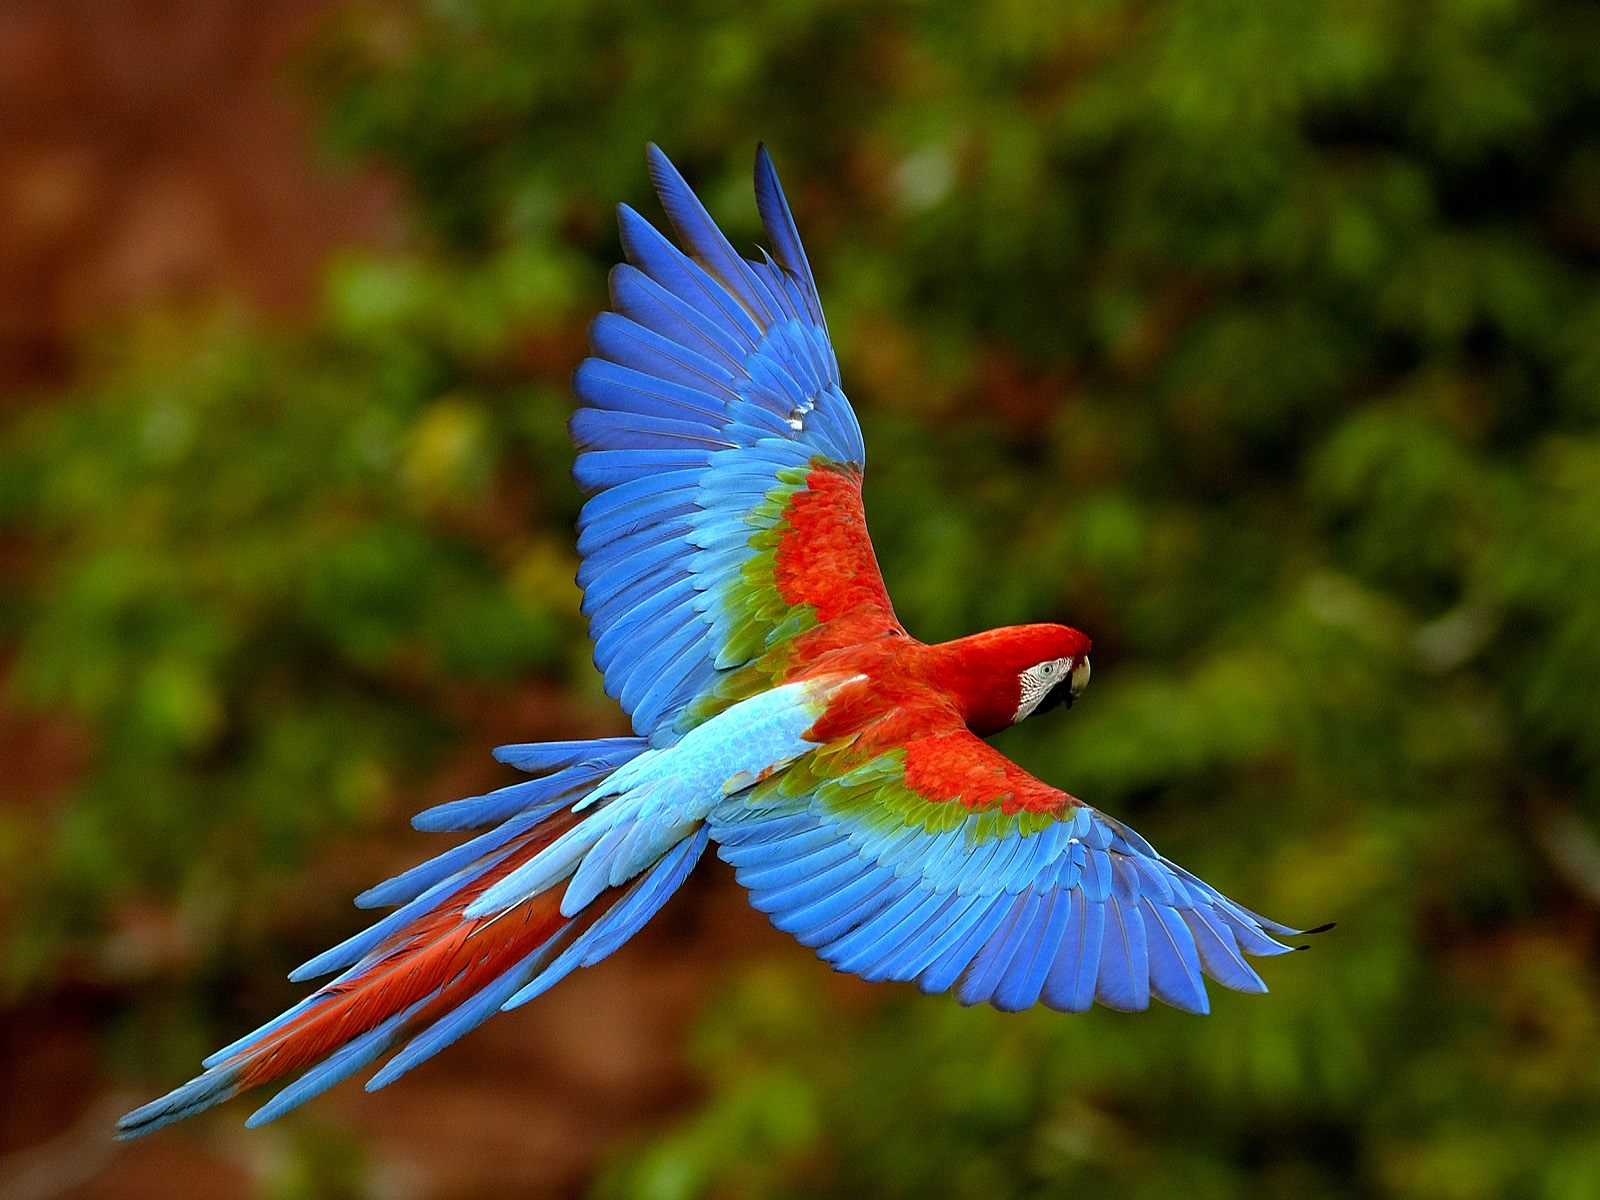 Macaw in flight wallpaper